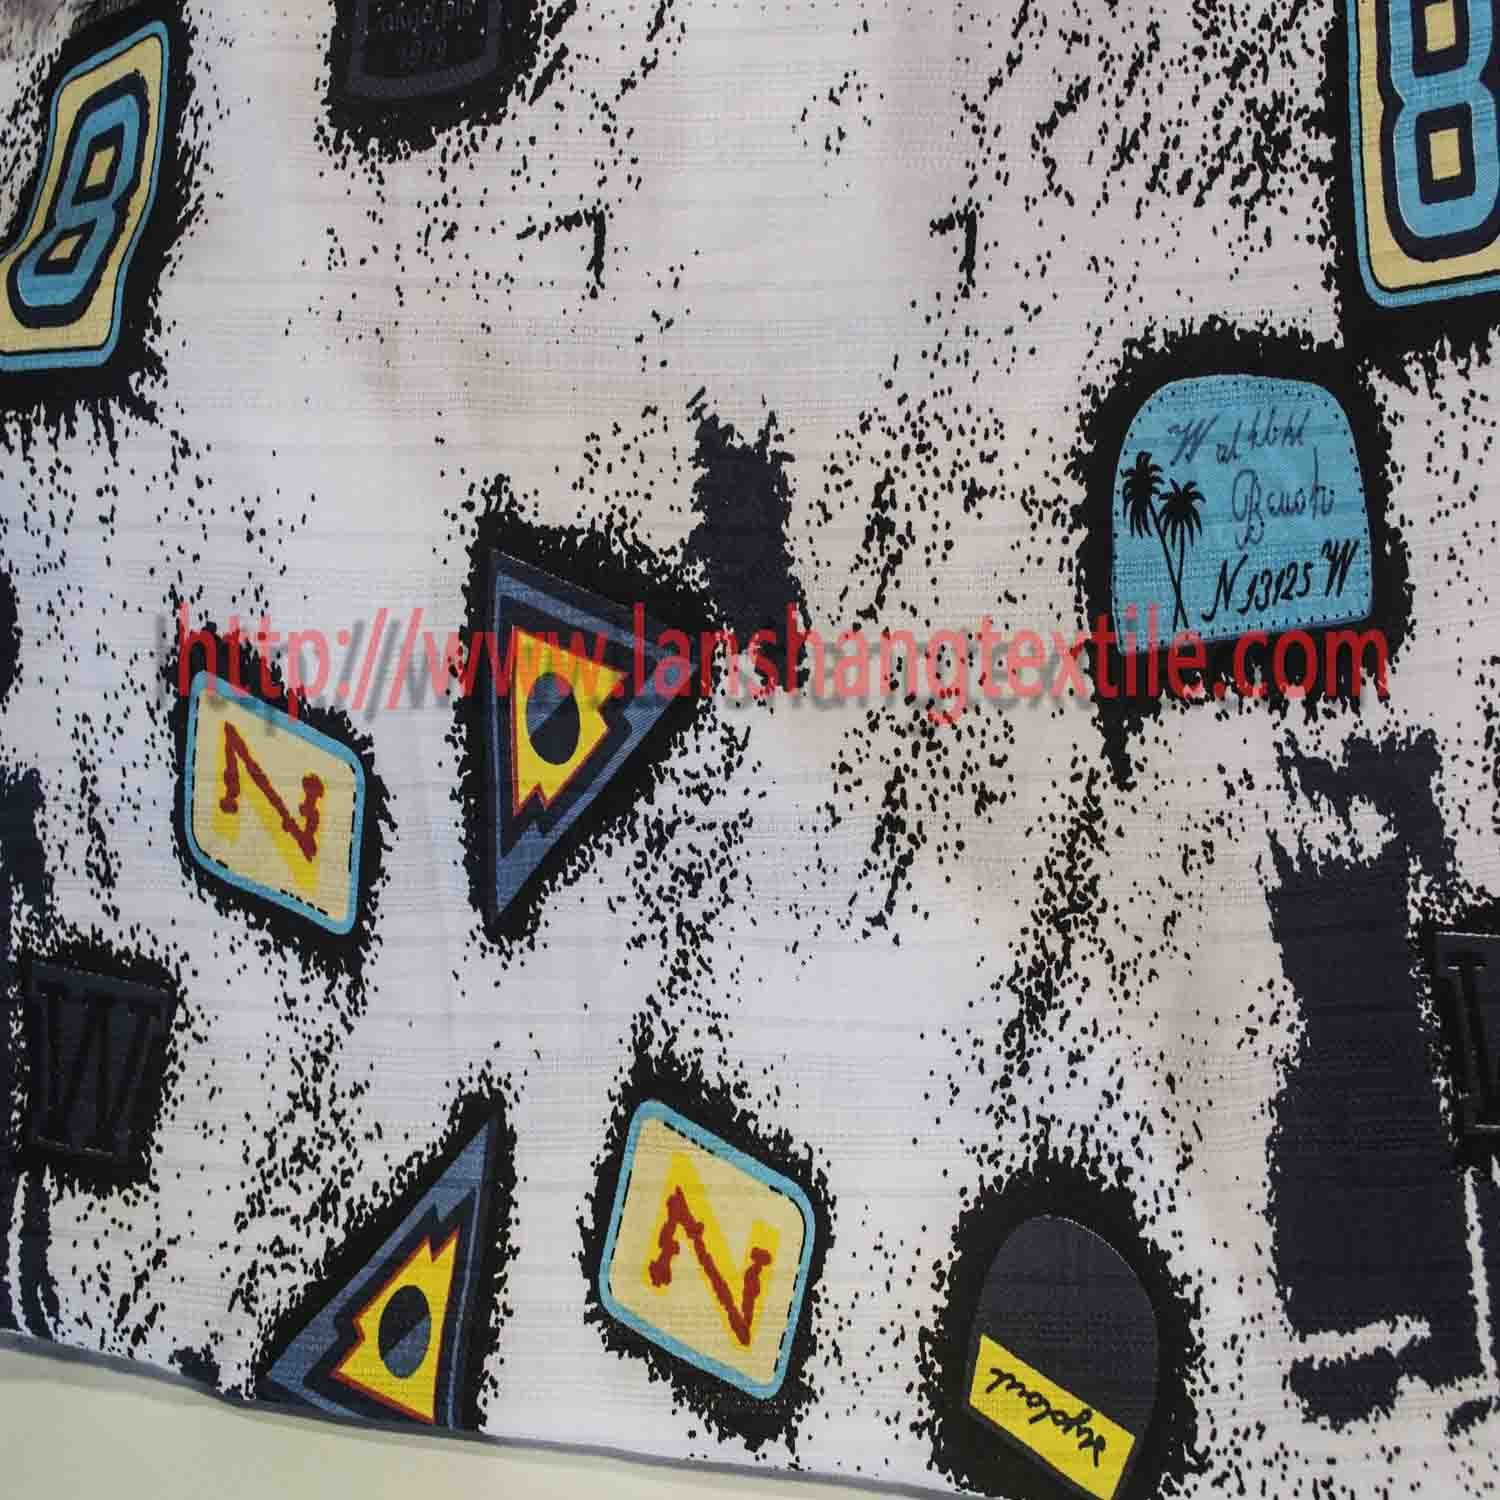 Dyed Fabric Dyed Jacquard Fabric Printing Fabric Cotton Fabric for Woman Dress Coat Skirt Children' S Garment.